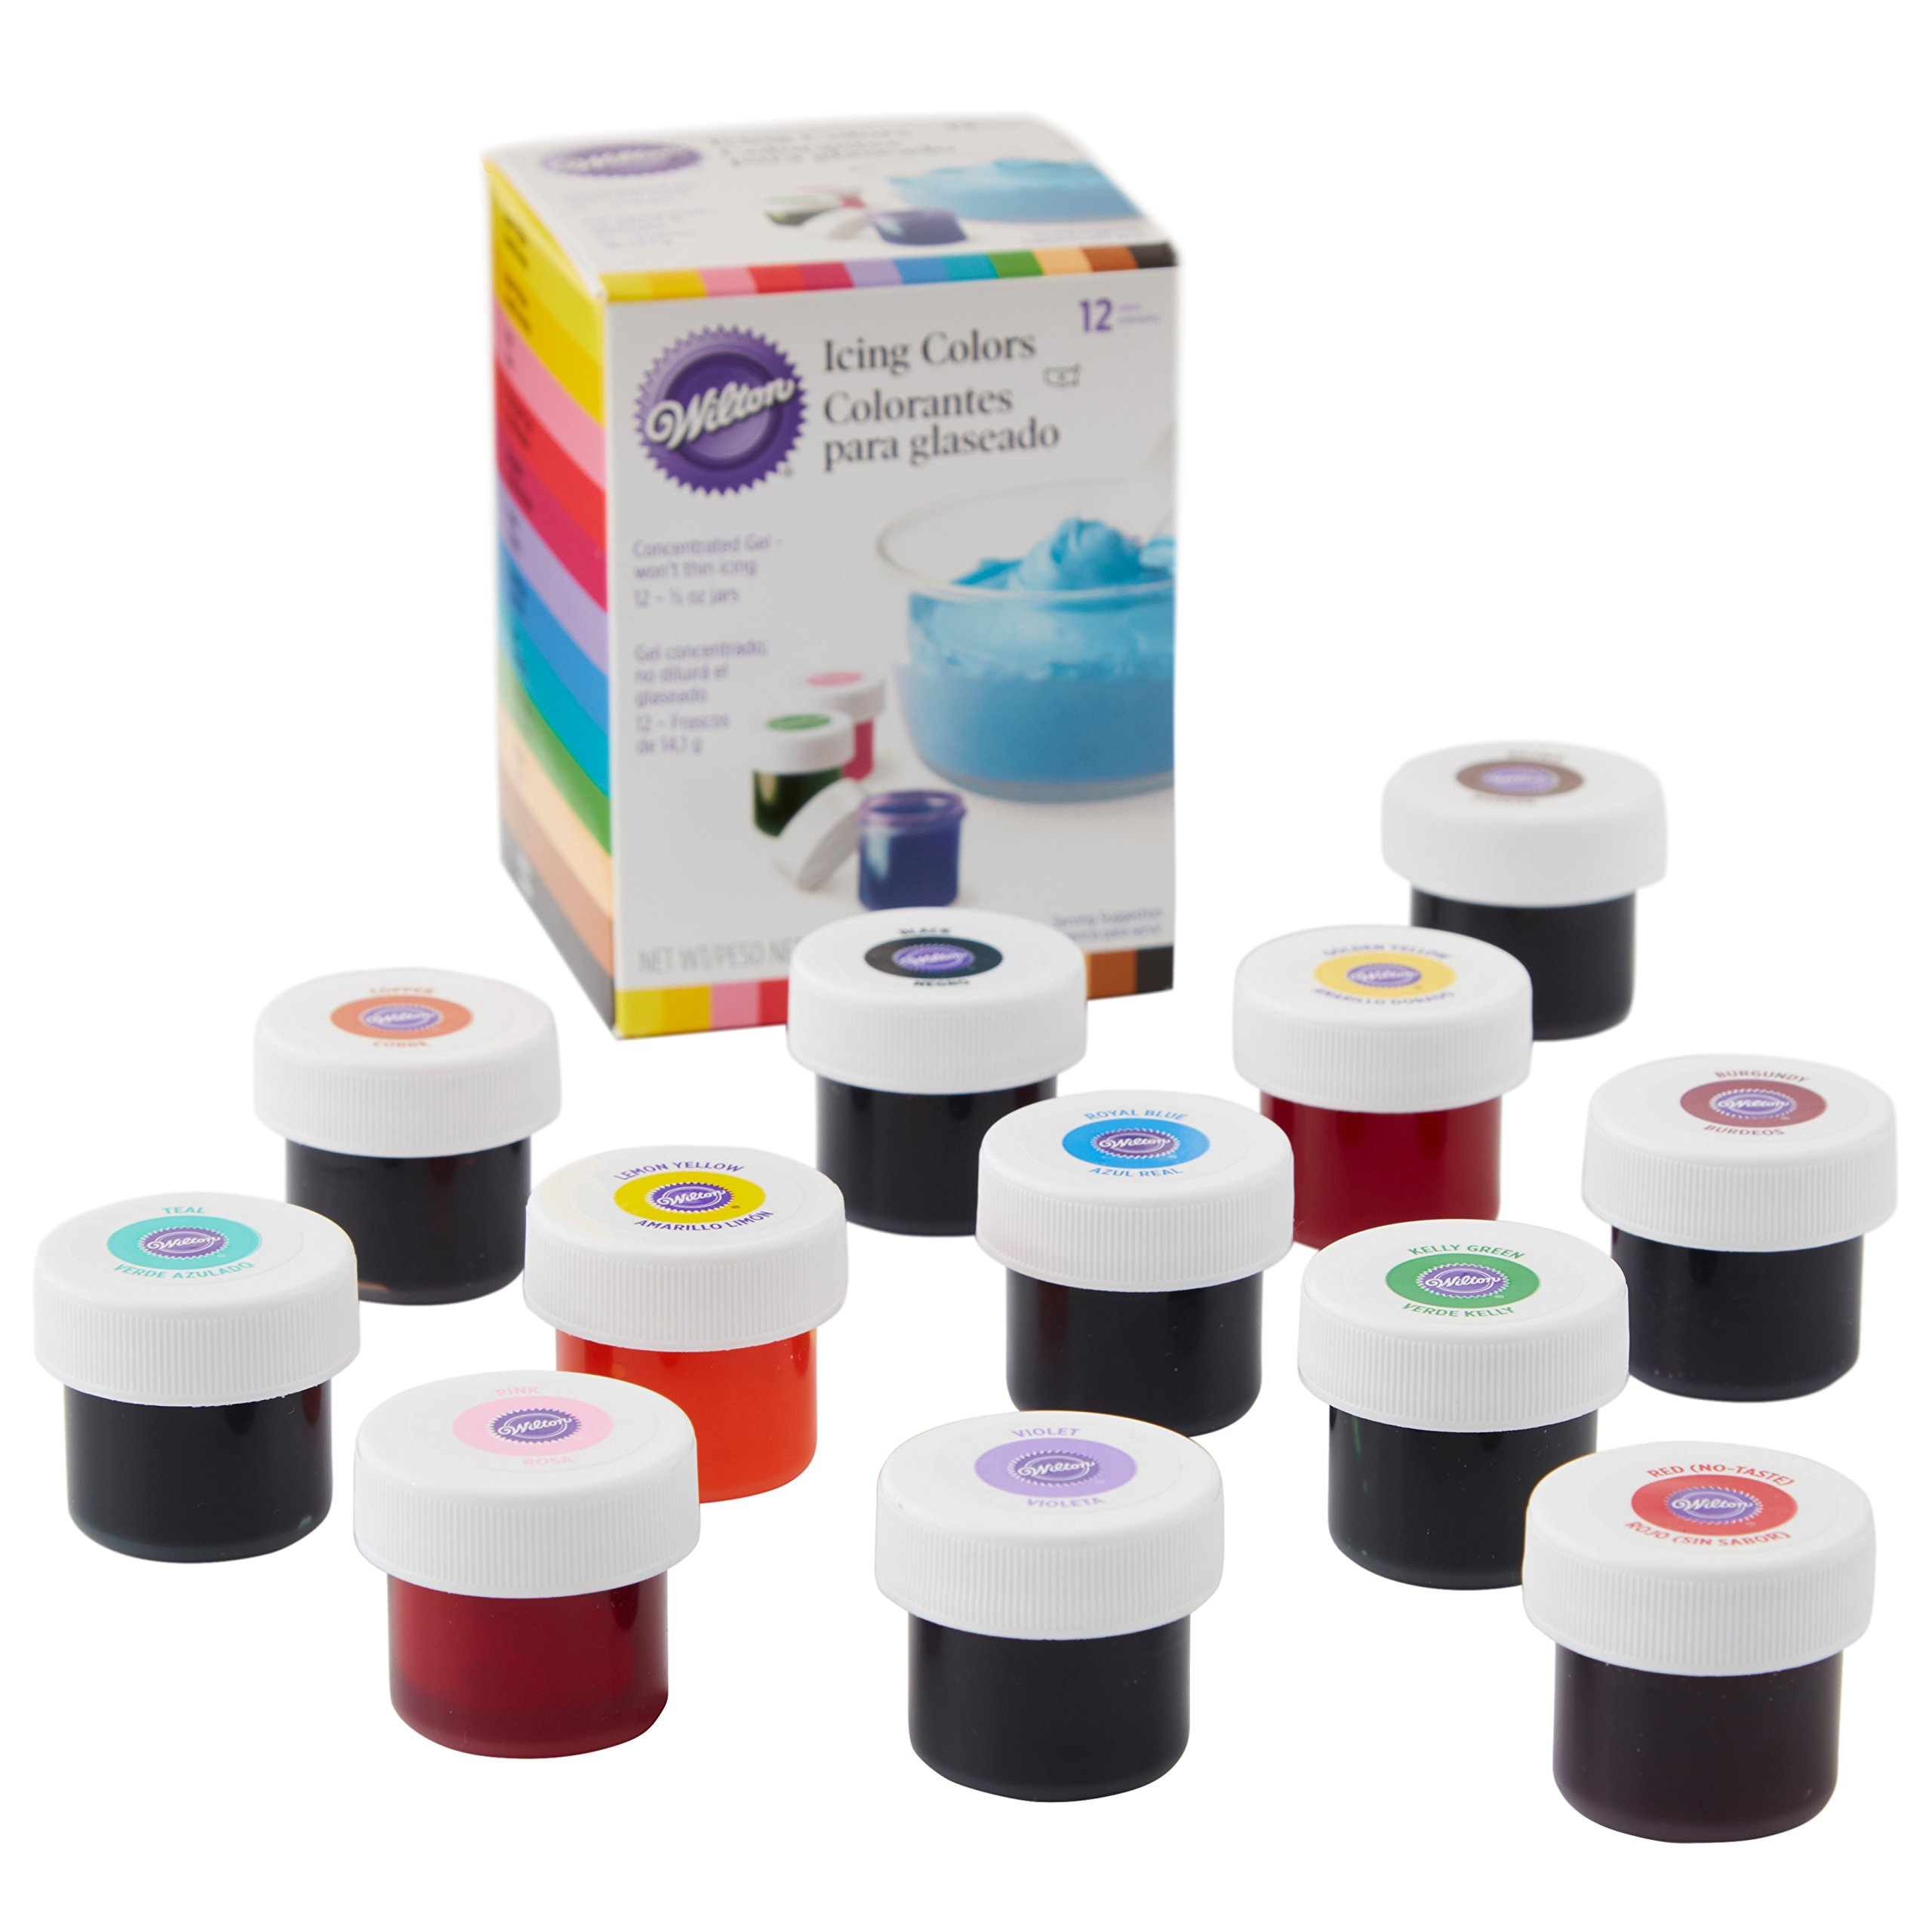 Wilton Icing Colors, 12-Count Gel-Based Food Color by Wilton